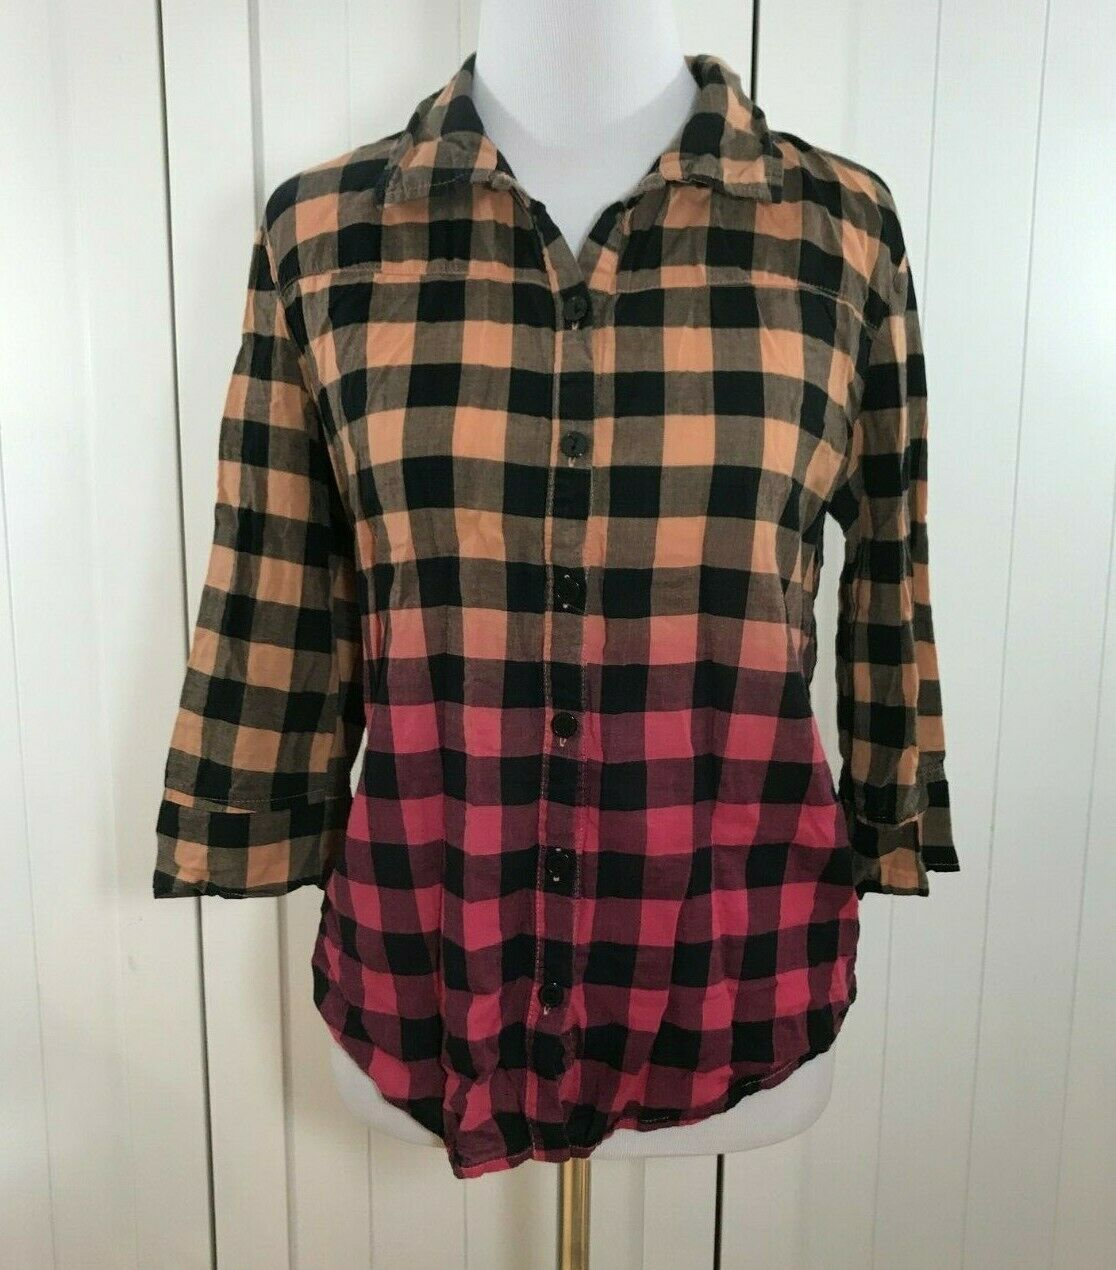 Self Esteem Orange Pink Black Plaid Checkerd Blouse Top Shirt Size Medium 10